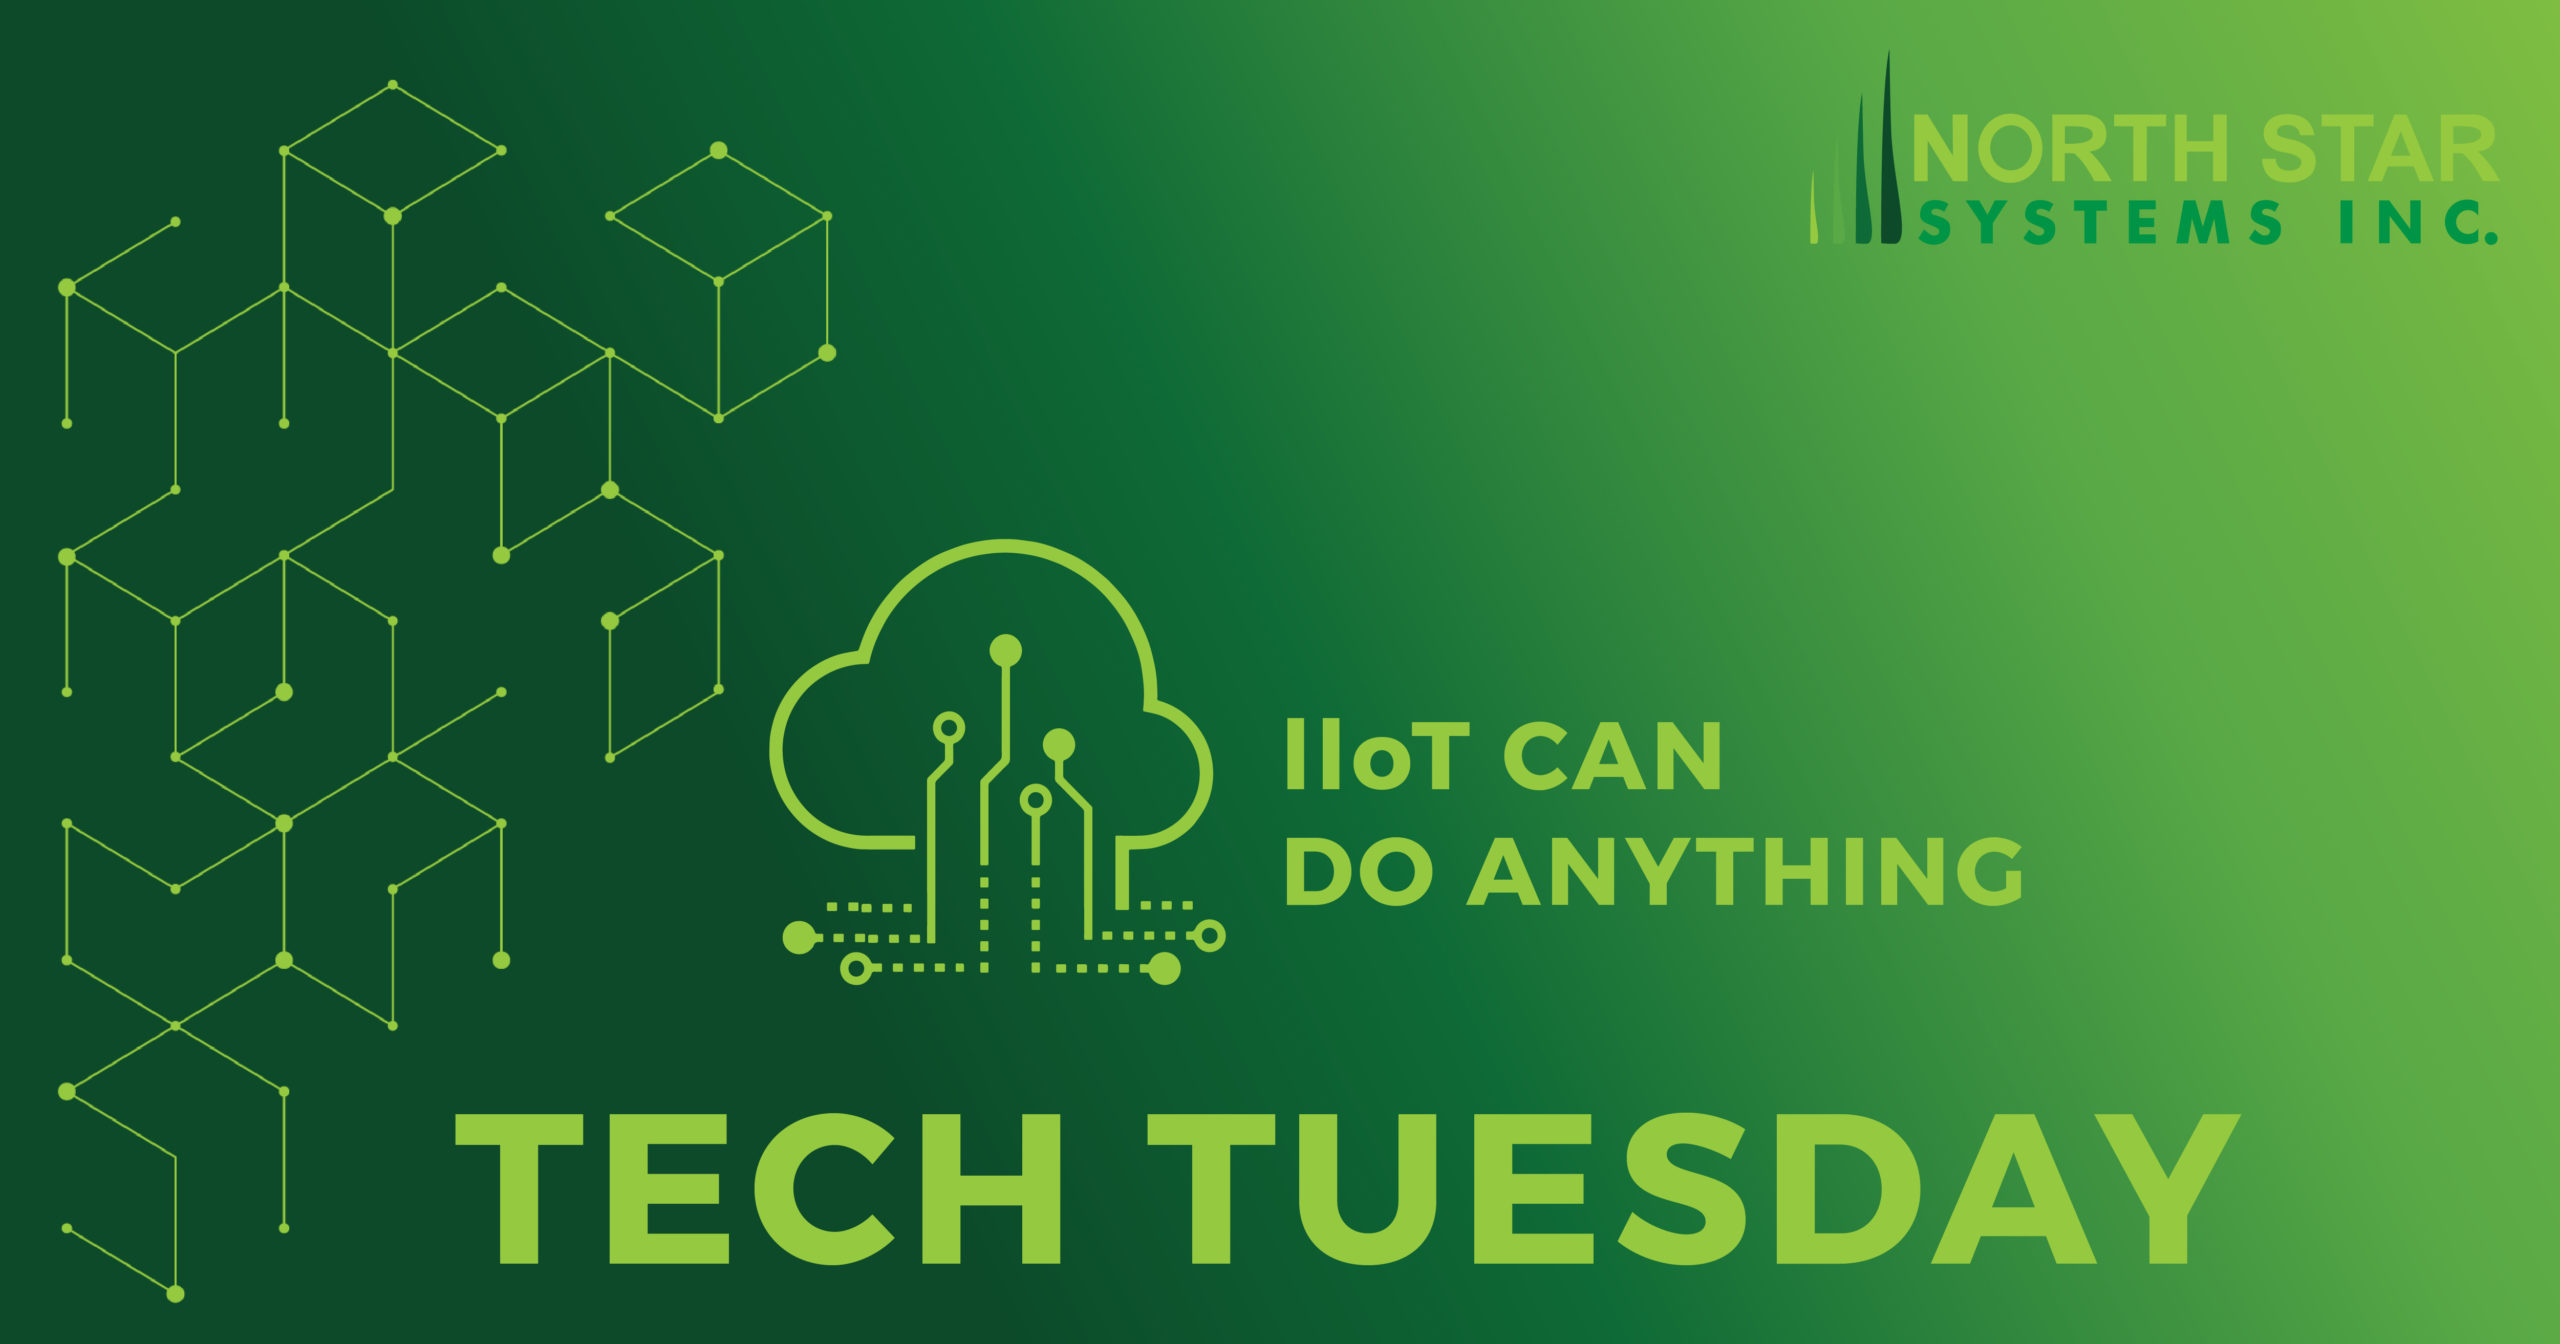 IIoT Can Do Anything